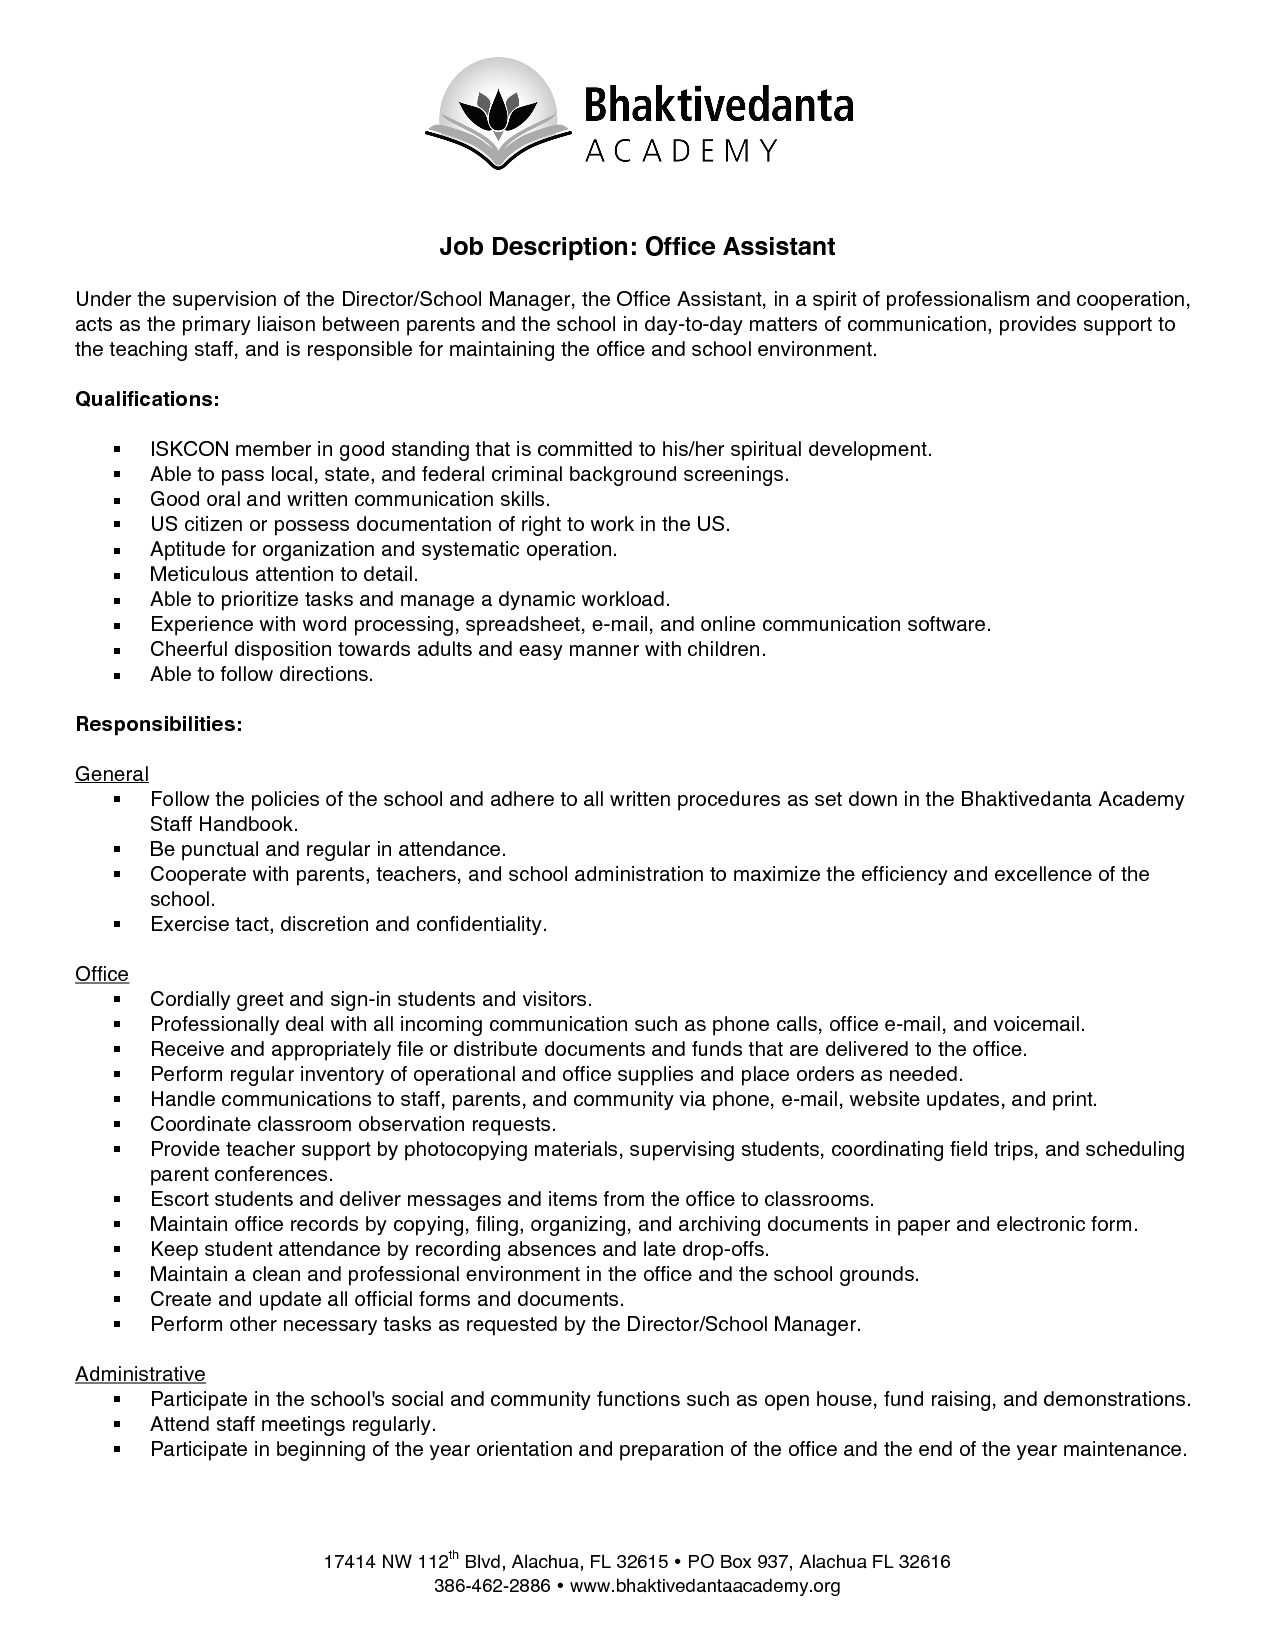 office assistant job description resume qualification general office administrative - Resumes For Office Jobs